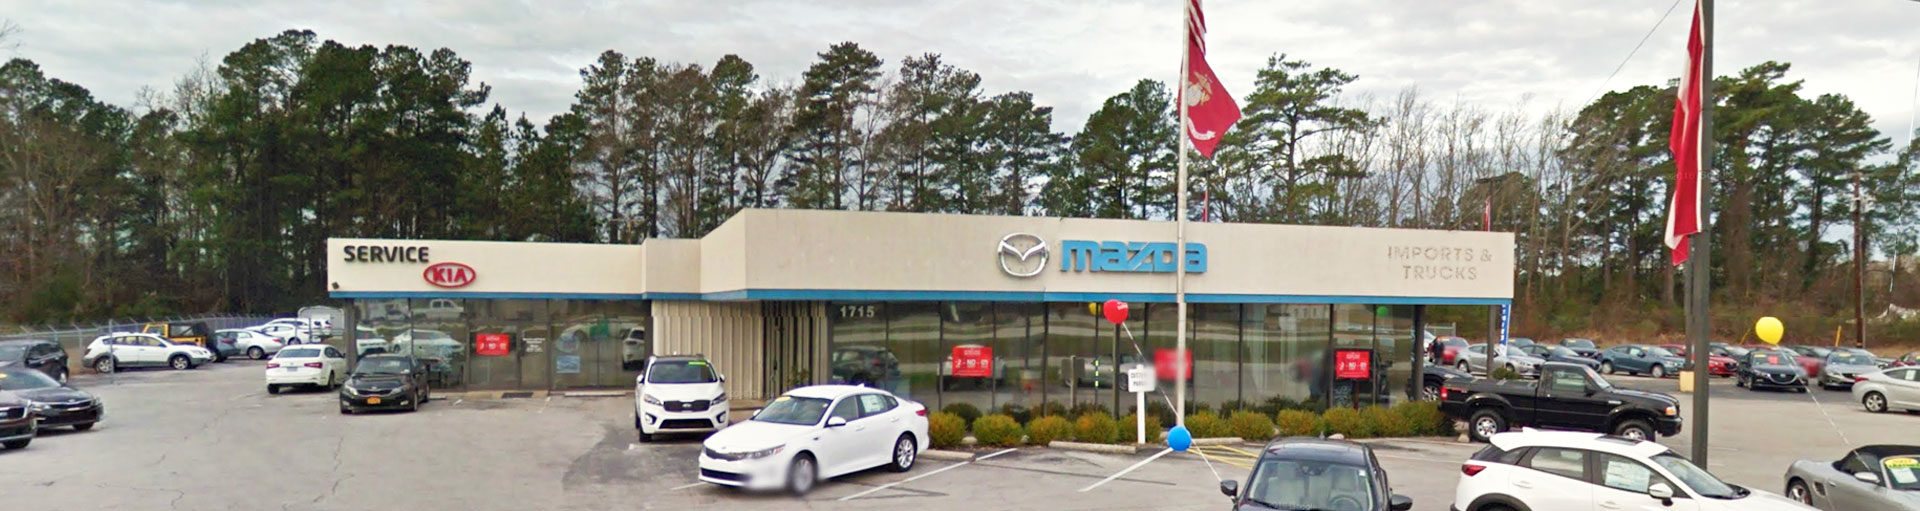 Mazda of New Bern Service Department